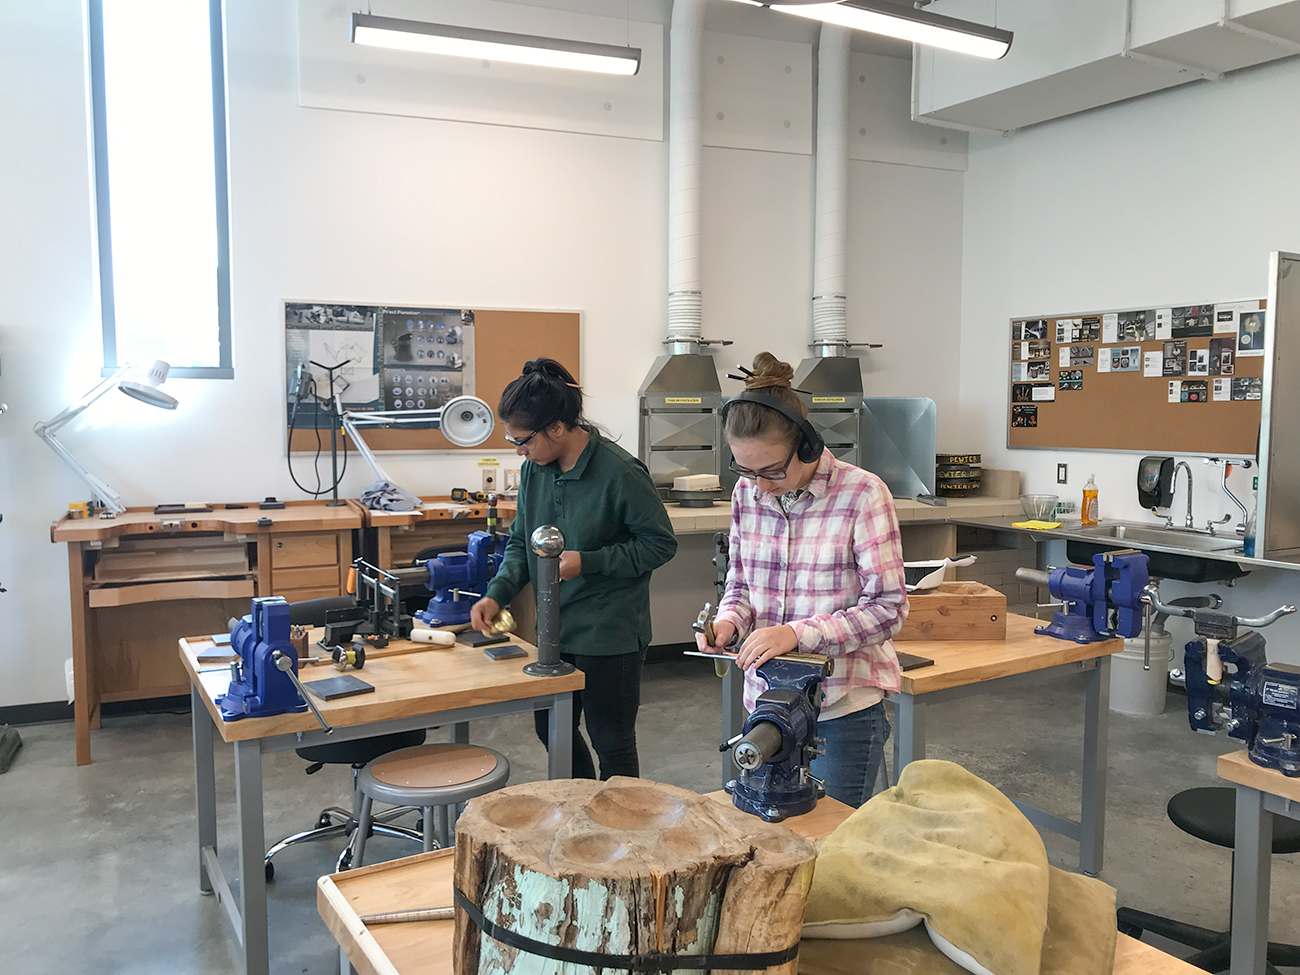 Art Metals Students working in studio